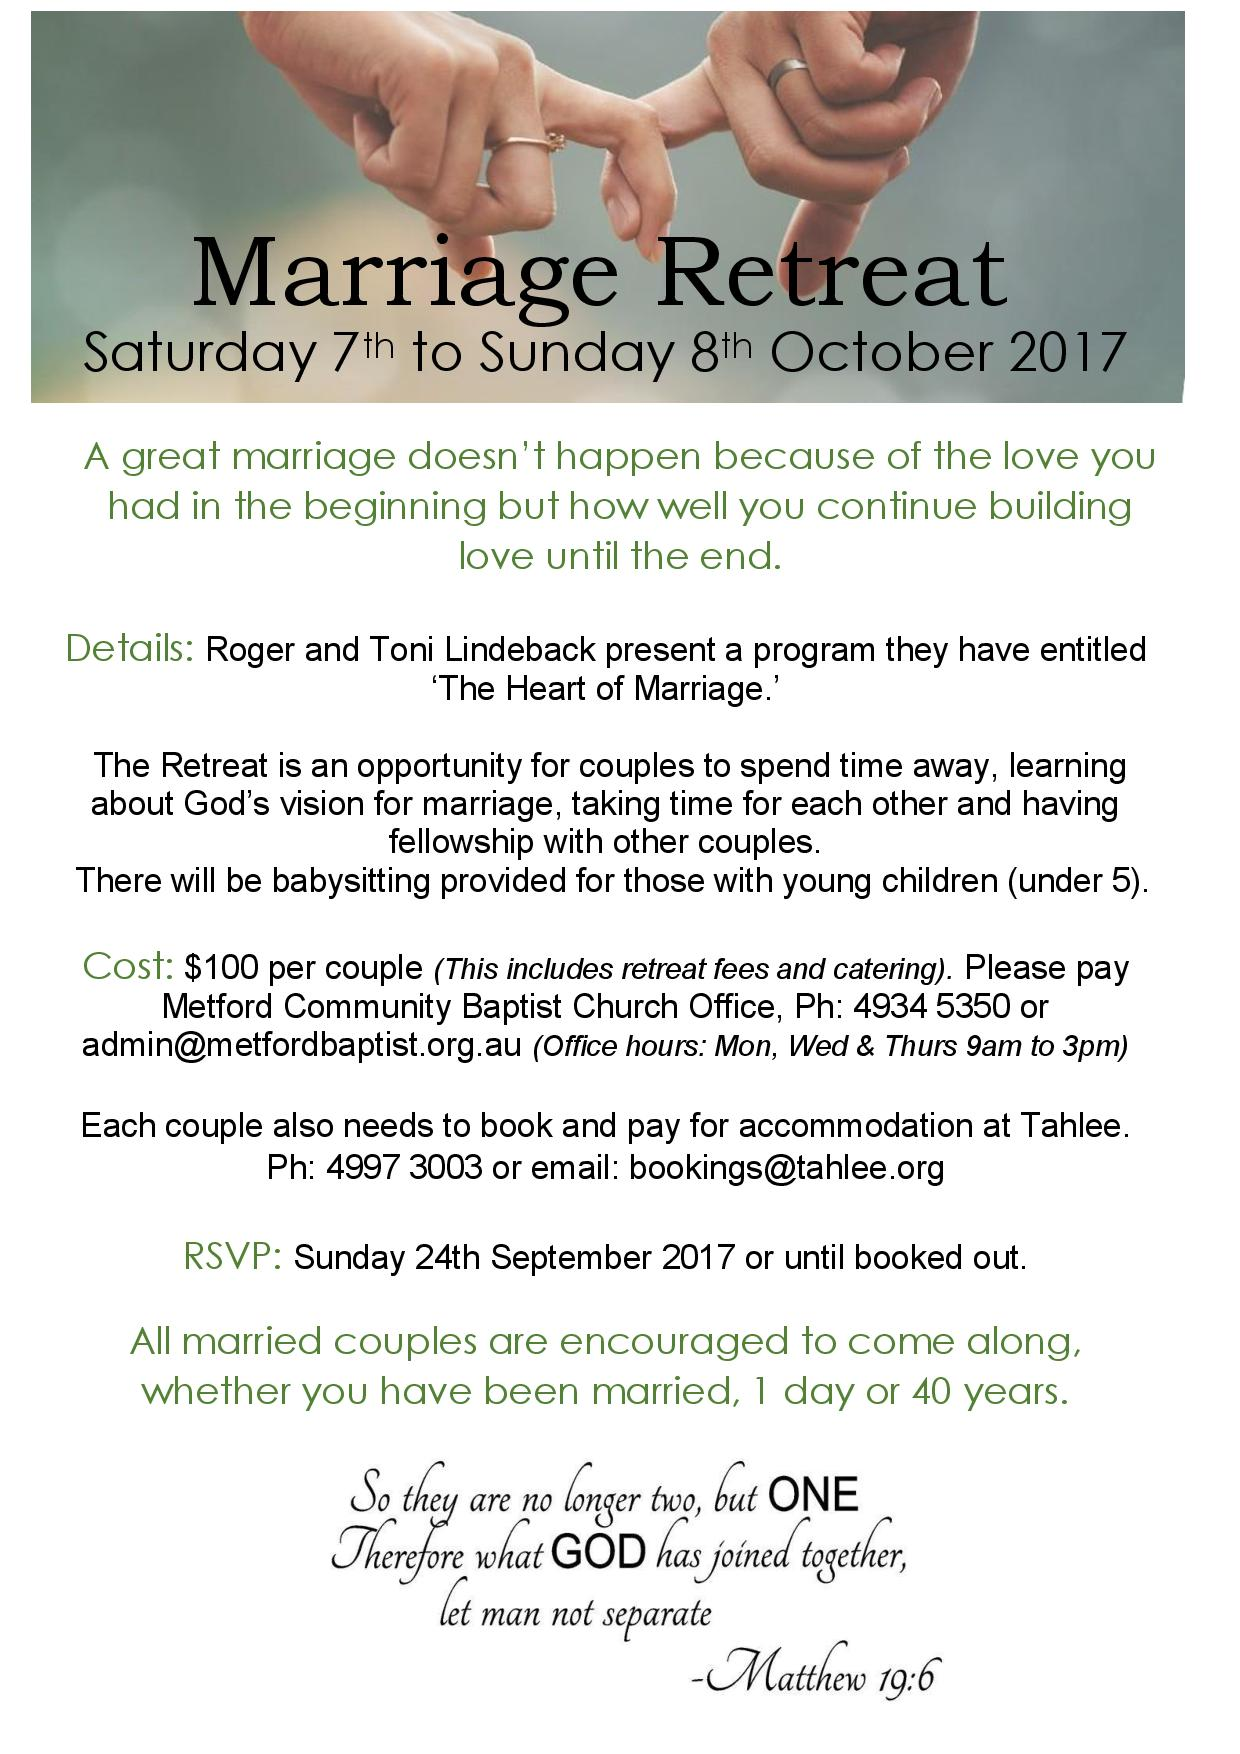 Events - Marriage Retreat